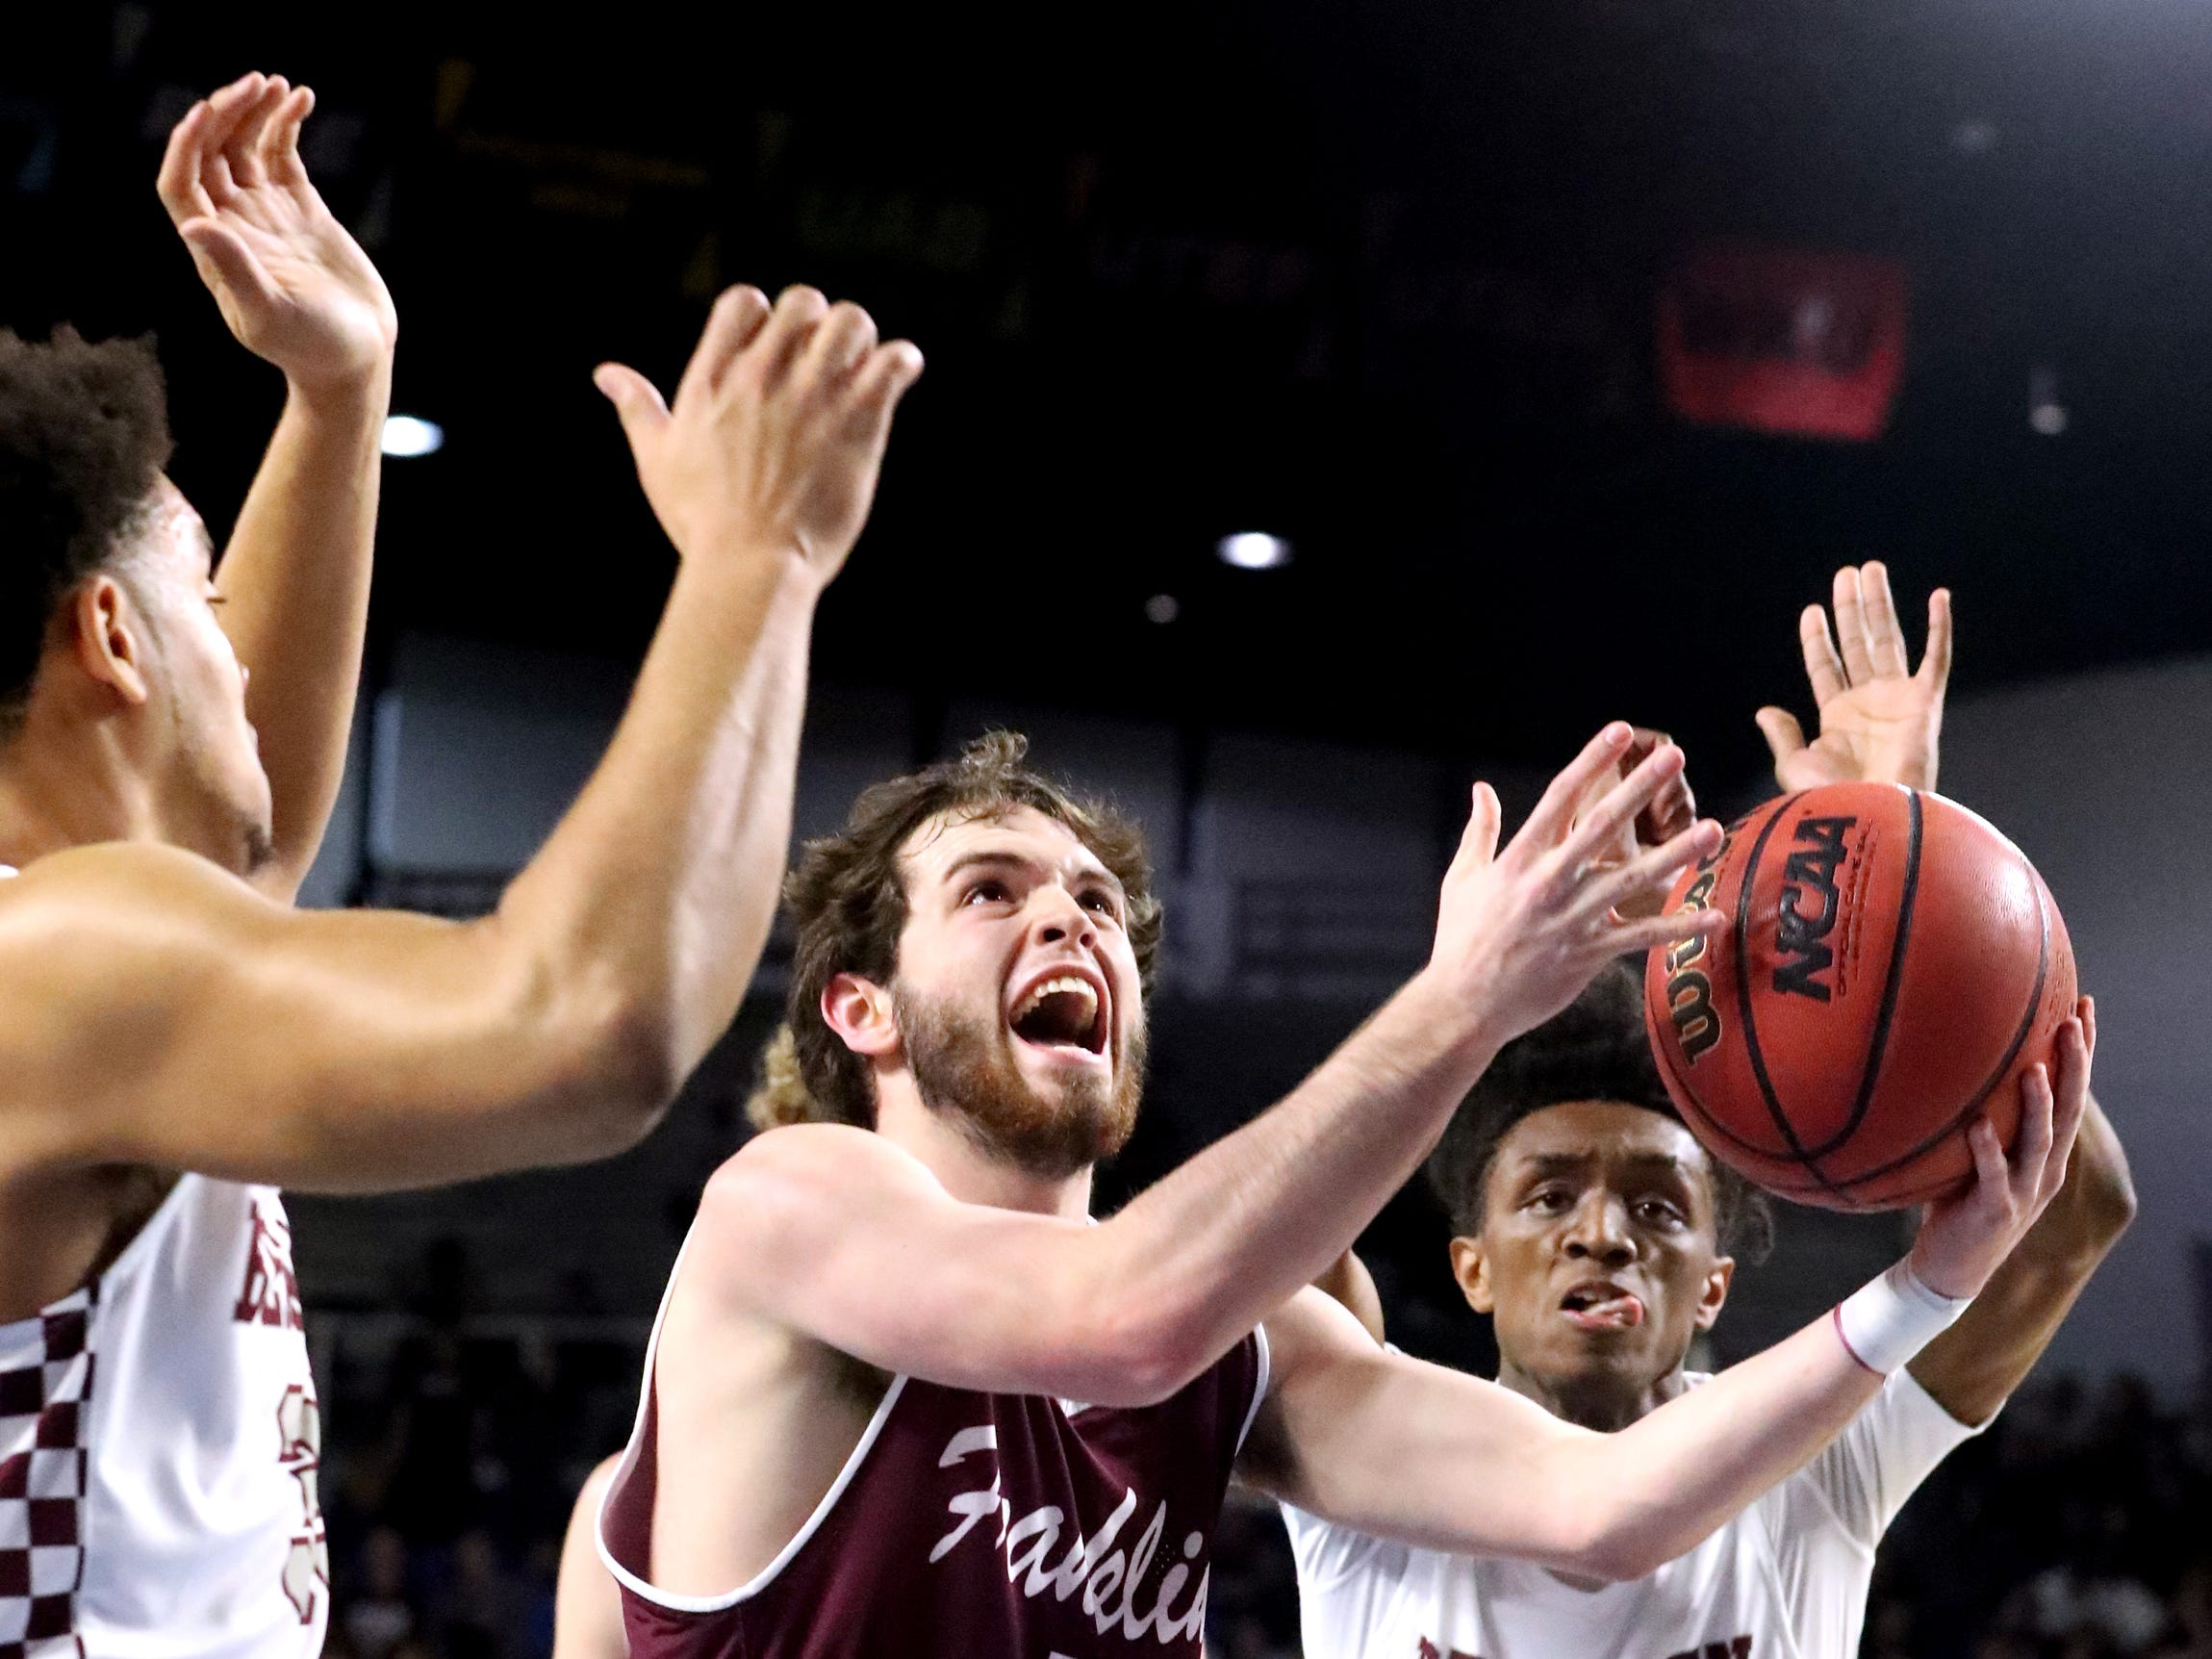 Franklin's Reese Glover (3) shoots between Bearden's Shamarcus Brown (35) and Bearden's Trent Stephney (1) during the quarterfinal round of the TSSAA Class AAA Boys State Tournament, on Wednesday, March 13, 2019, at Murphy Center in Murfreesboro, Tenn.